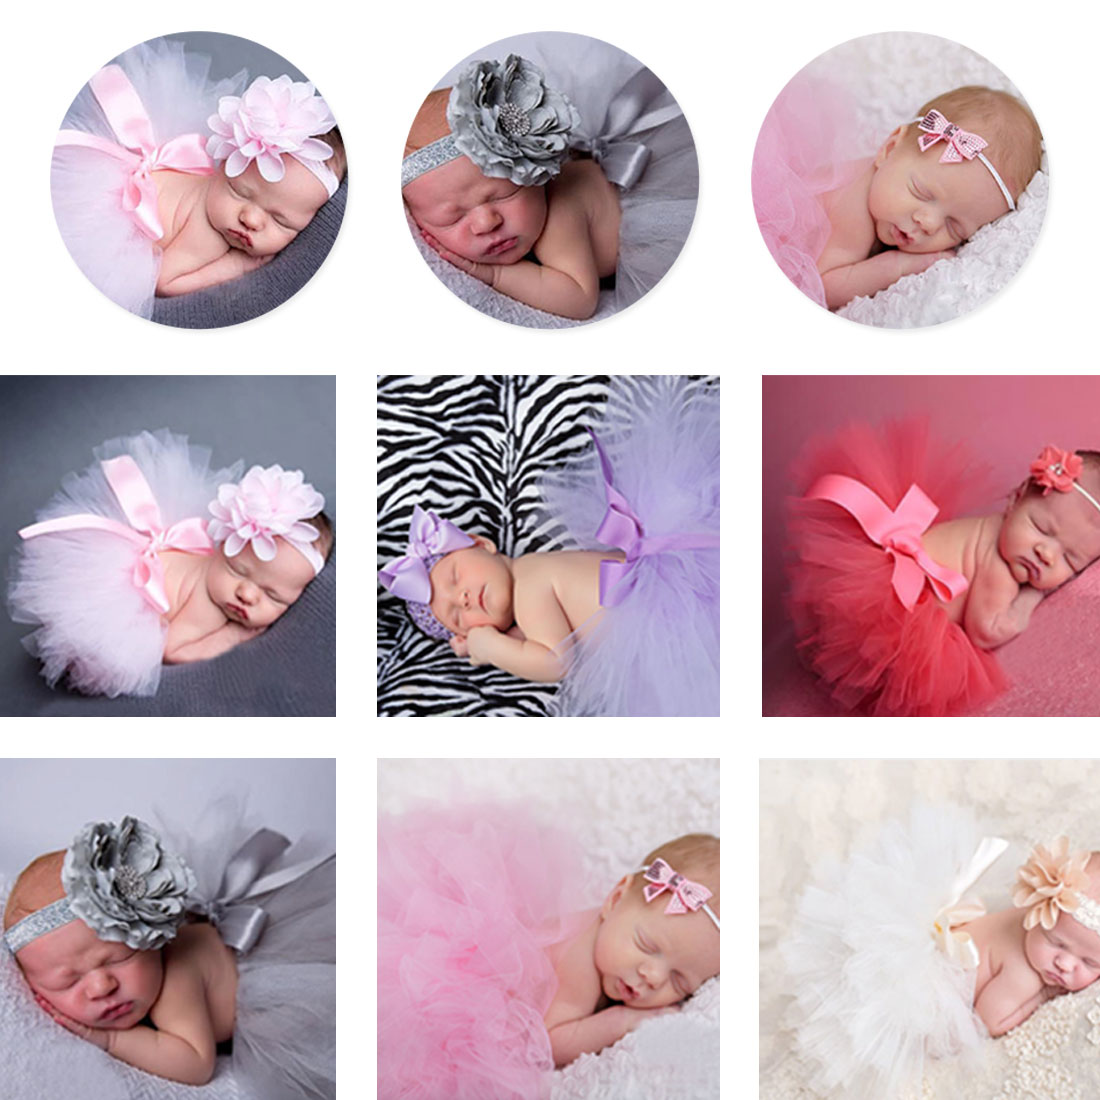 2pcs Short Skirts Headband Set Baby Girl Tulle Tutu Skirt and Flower Headband Set Newborn Photography Props Baby Birthday Gift in Skirts from Mother Kids